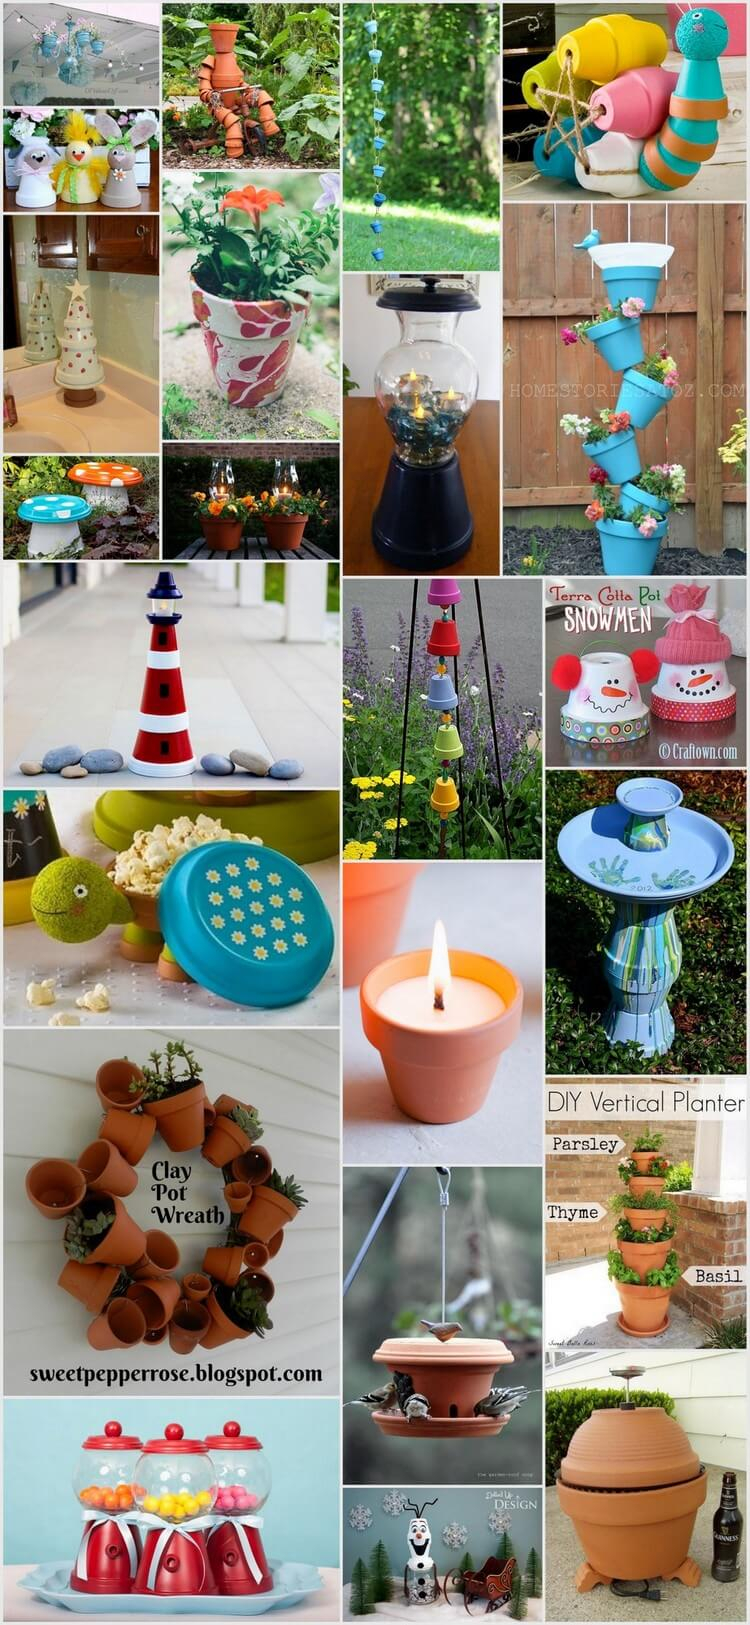 20+ Fascinating Things To Make With Clay Pots